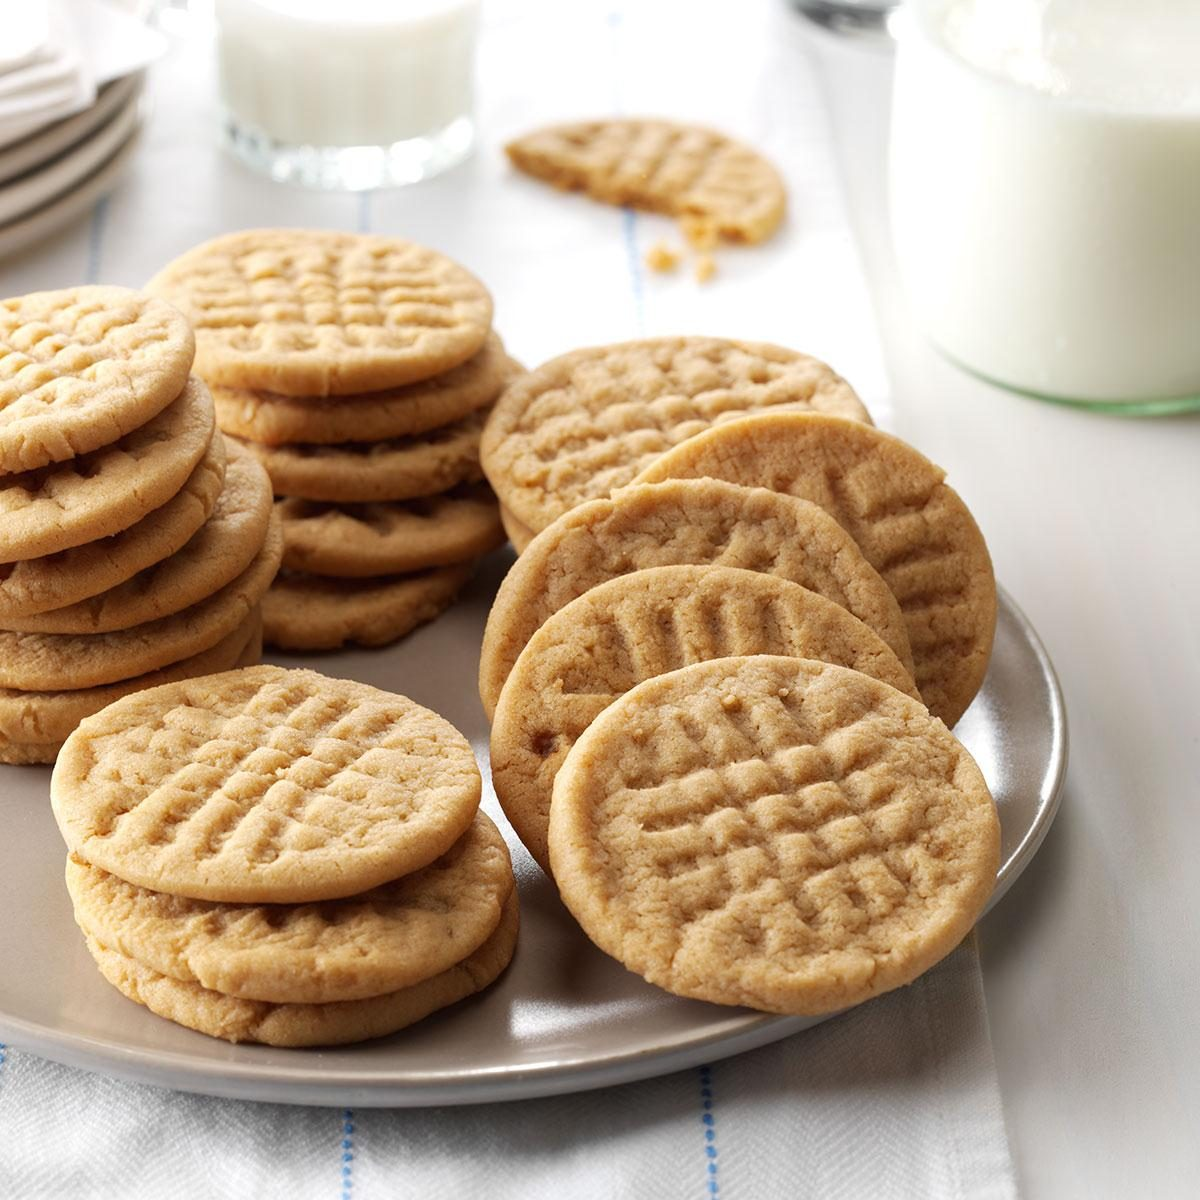 Low-Fat Peanut Butter Cookies Recipe | Taste of Home